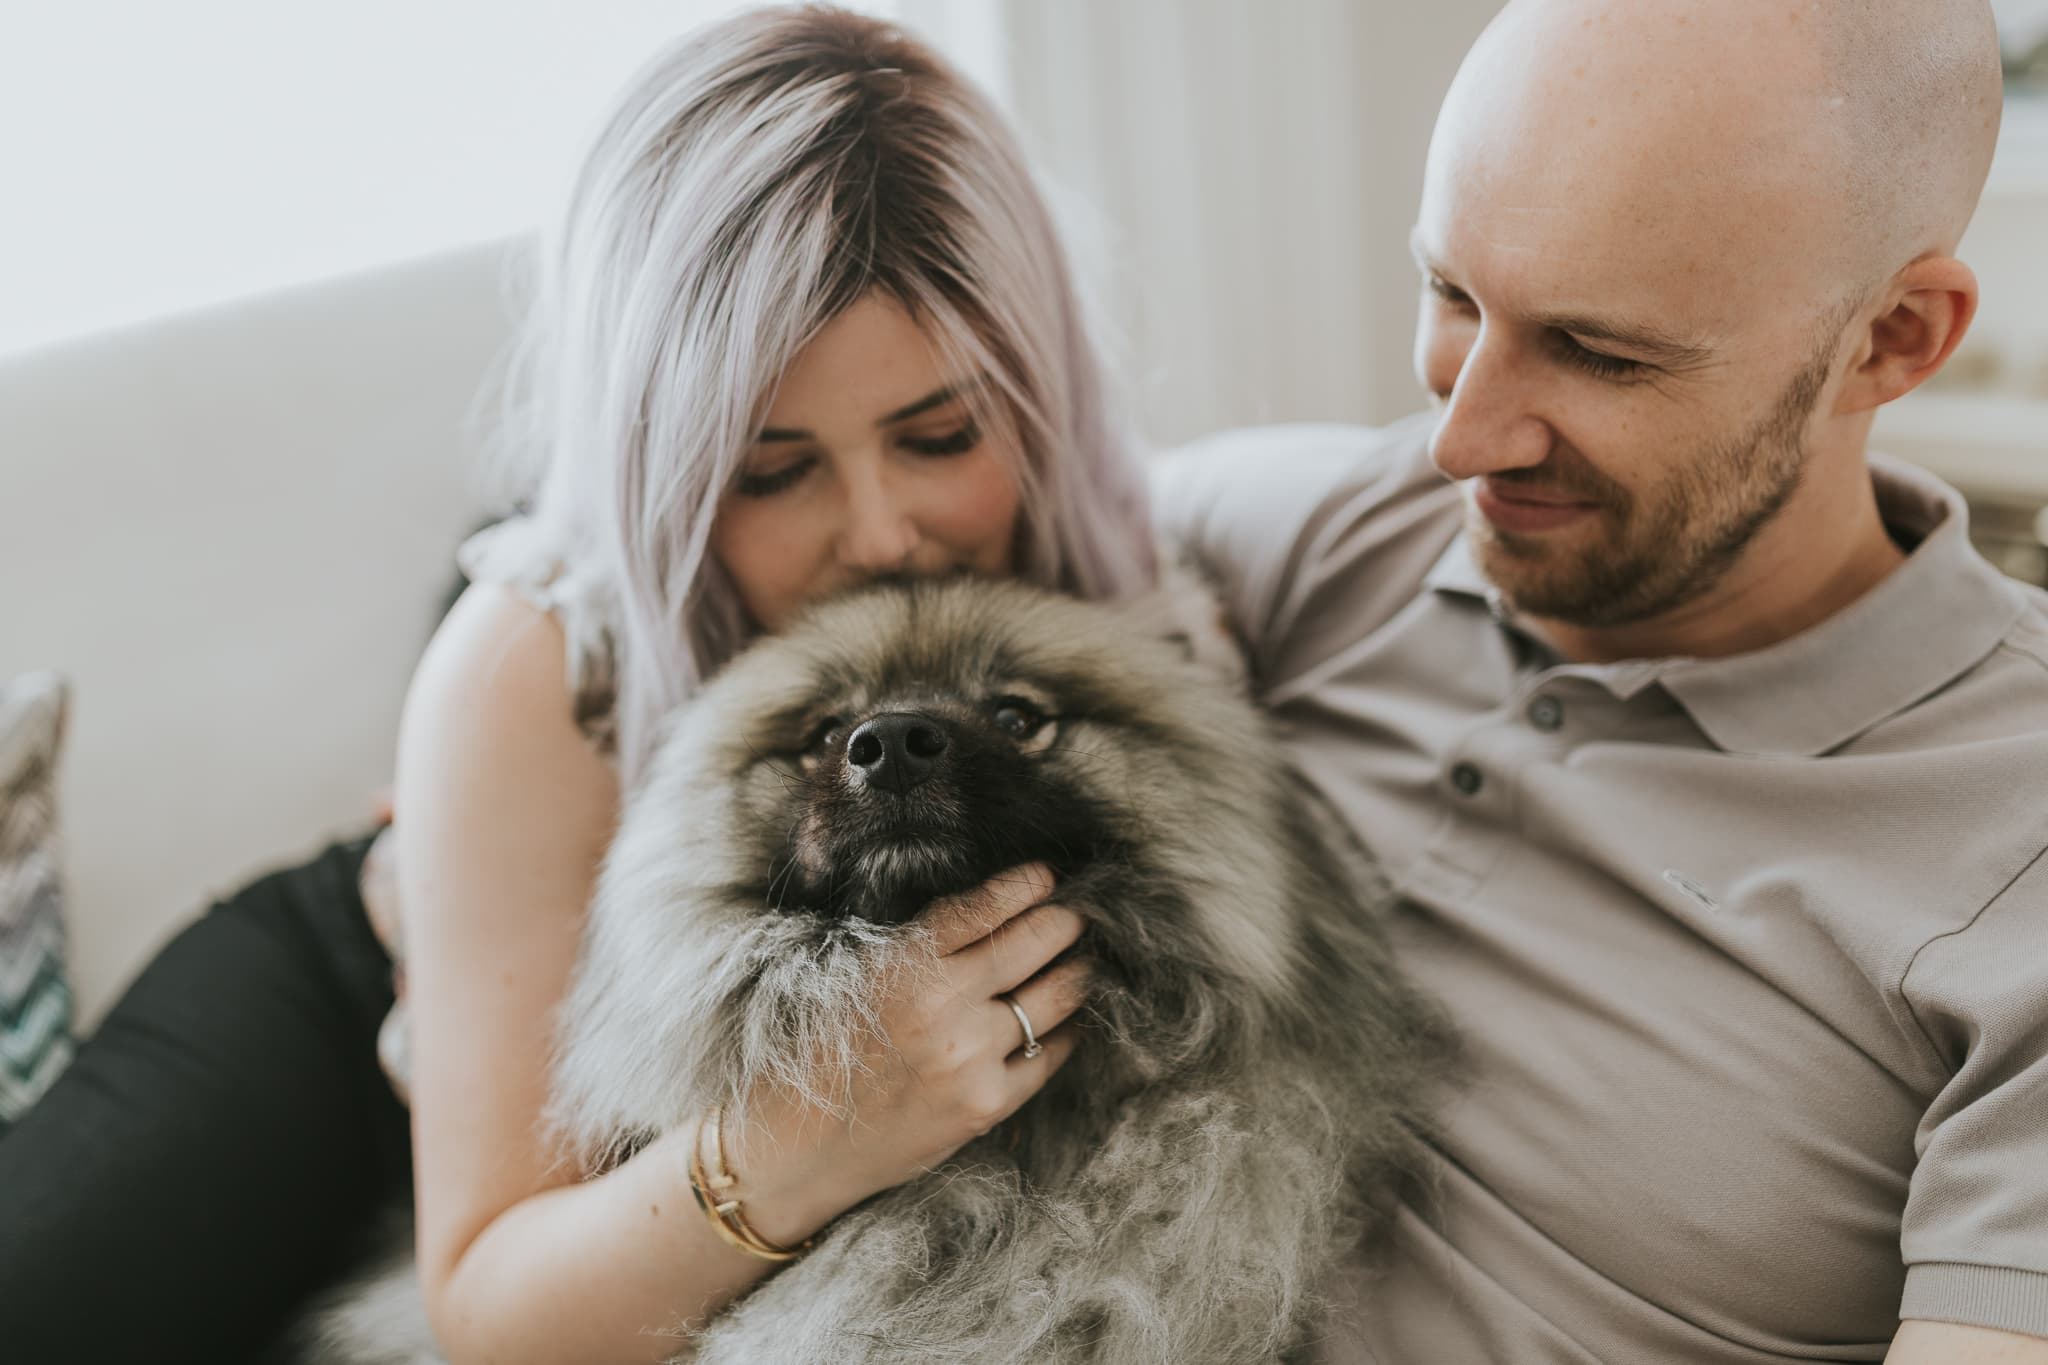 photoshoot with dog and cat in melbourne - cute couple photos - creative and candid